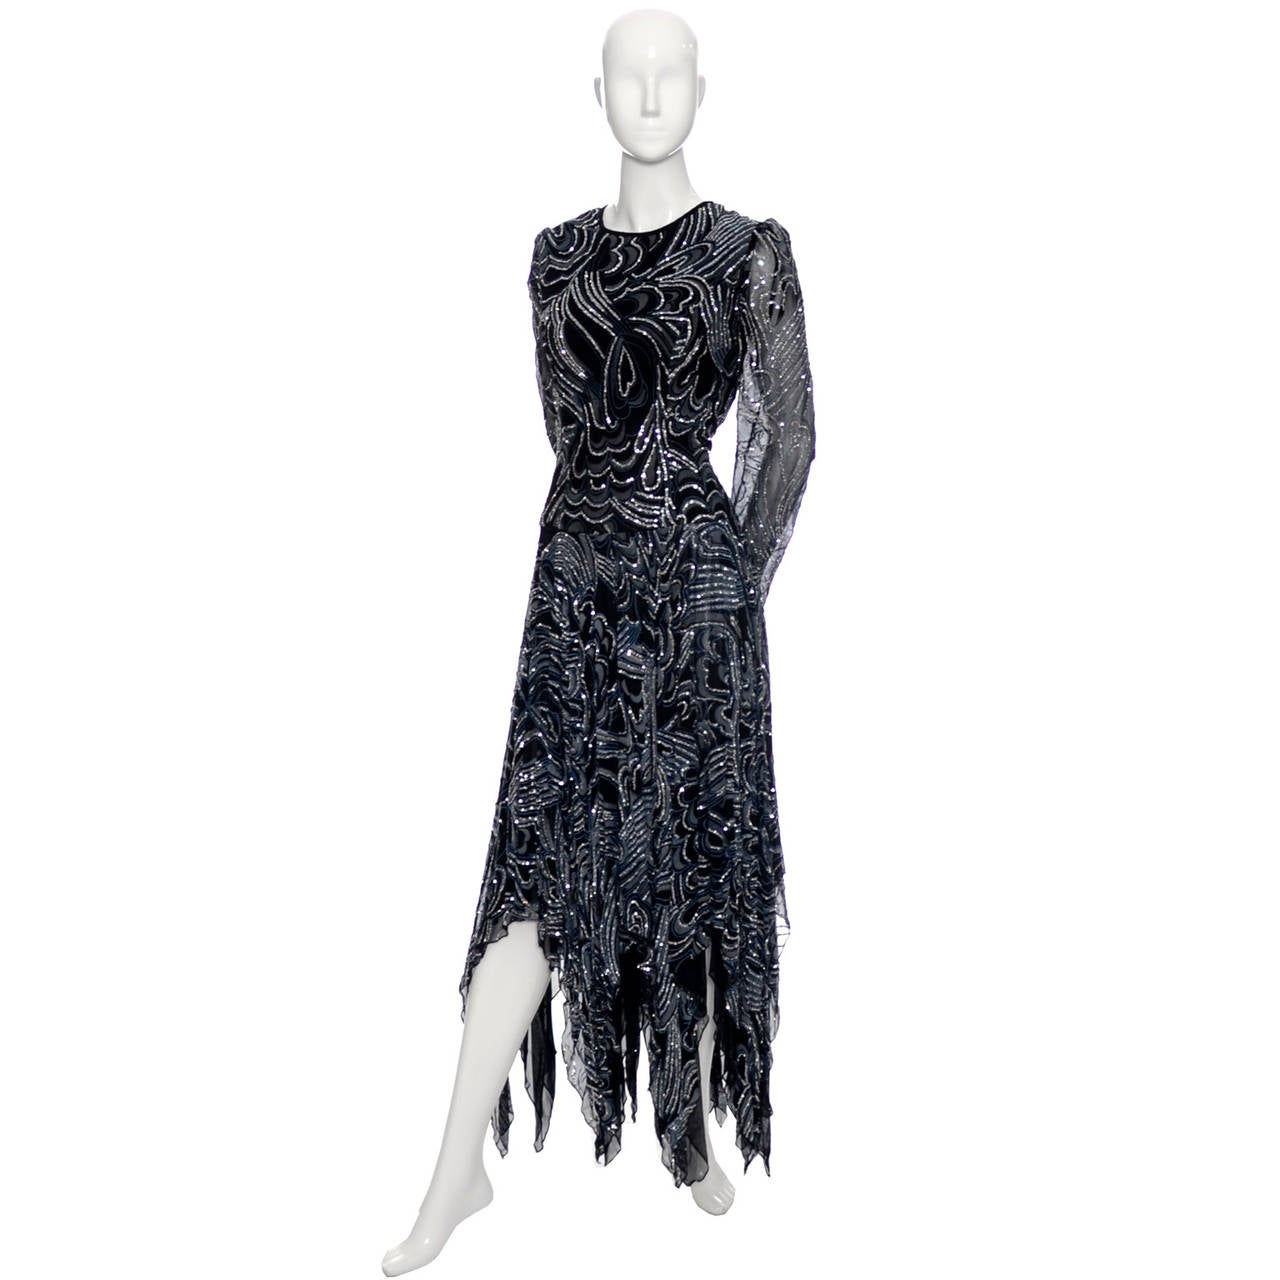 This 1980's vintage dress is from the British designer, Terence Nolder, who worked for Alfred Radley at Quorum and won the British Evening wear Designer Award in 1980 and The British Designer of the Year Award in 1981. This dress is in excellent